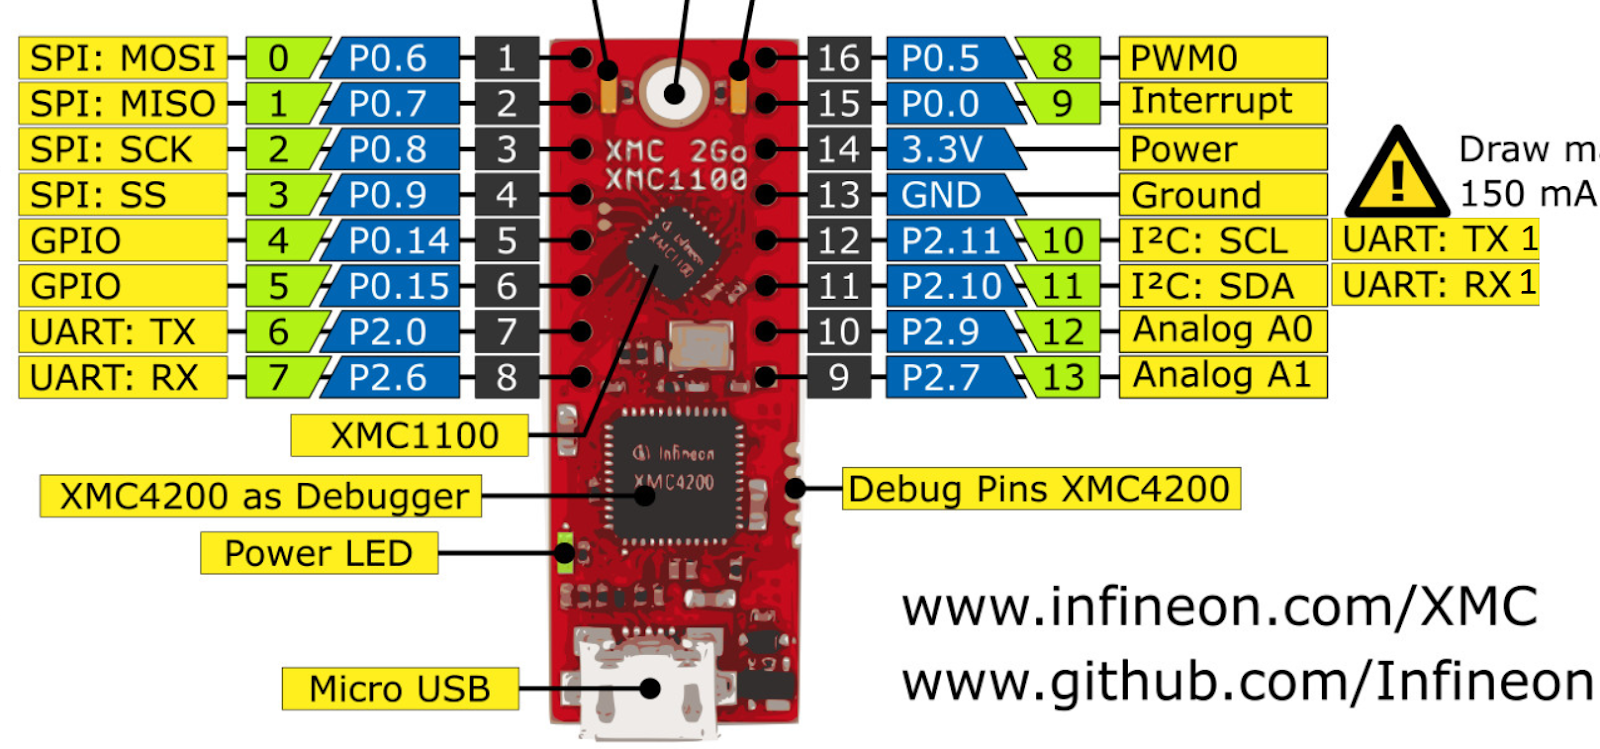 Myiot Infineon Shield2go Boards For Iot Review Element14 Dimming Power Leds With Arduino Electrical Engineering Stack The Order Of Pins Available At Headers X1 And X2 Corresponds To Pinning Schema Xmc1100 Table Is Also Printed Onto Bottom Side